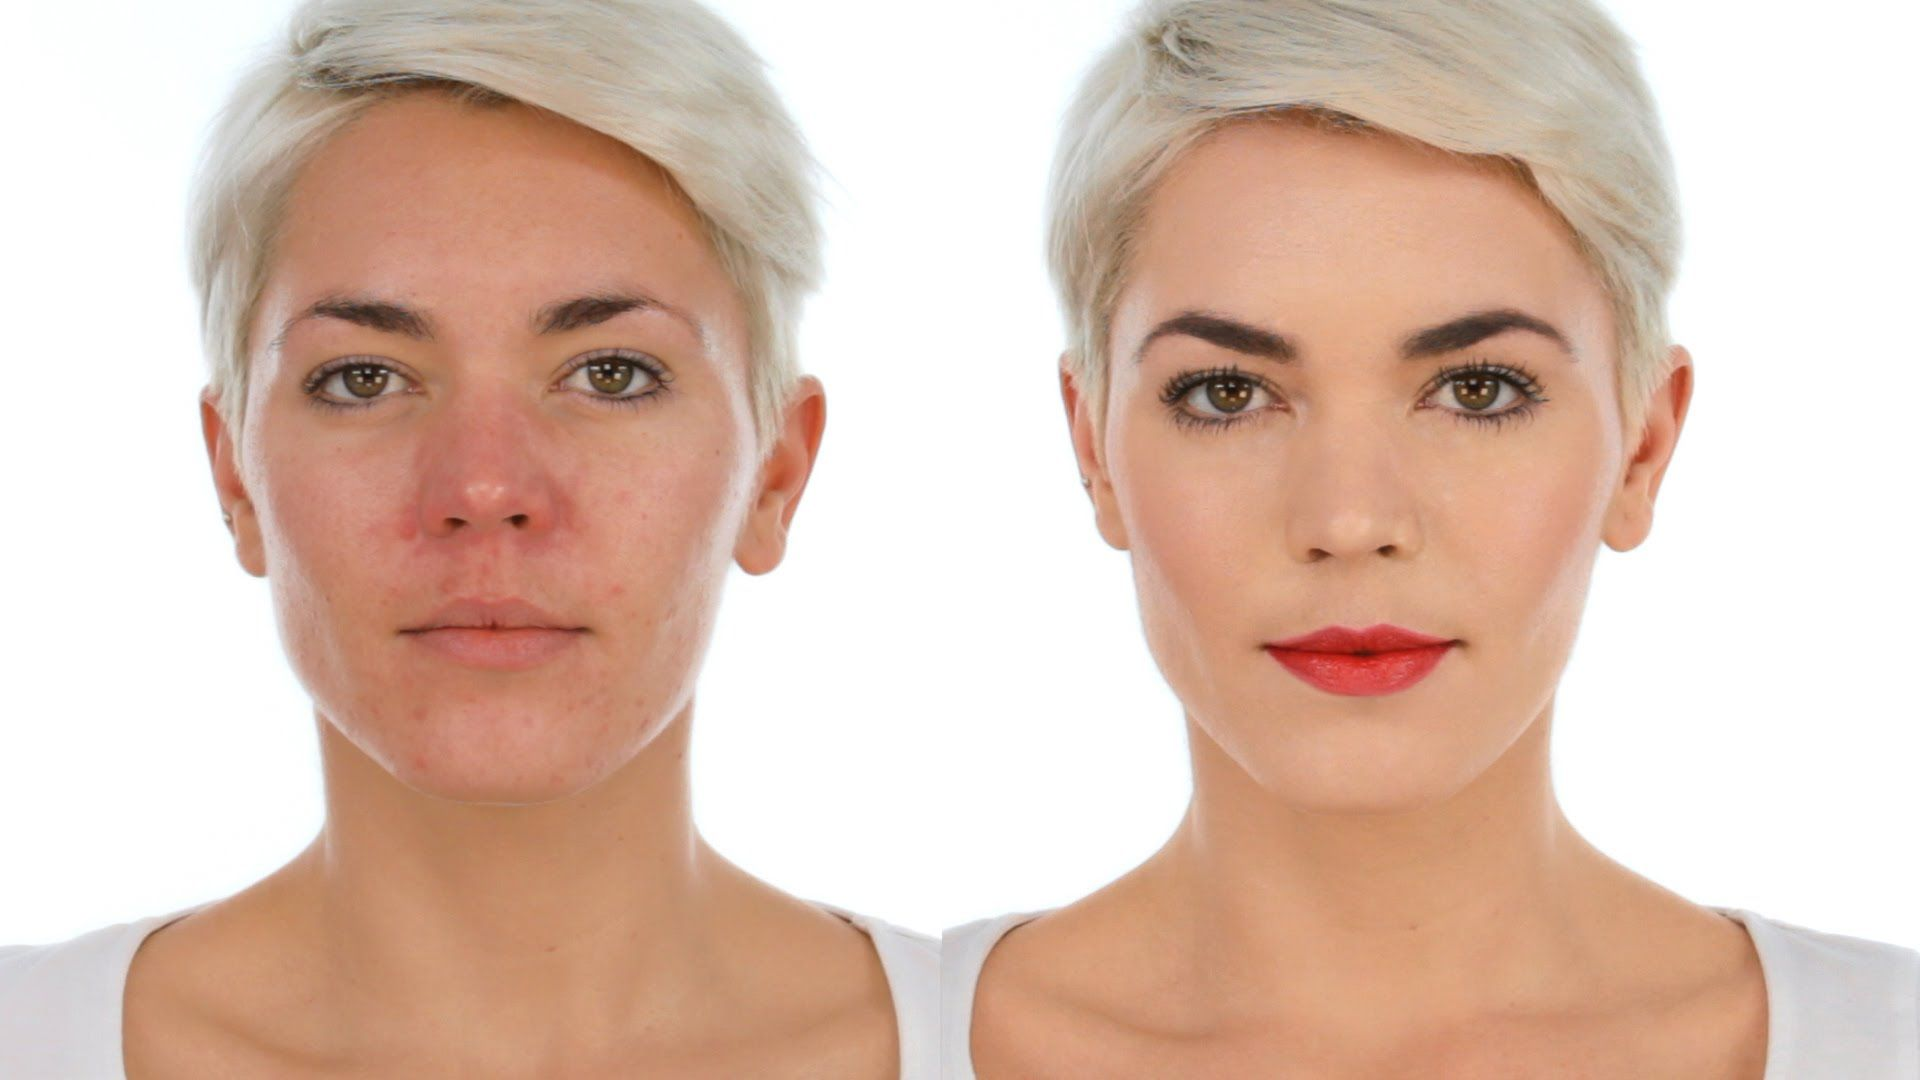 Makeup Tips for Redness and Rosacea Simple Statement